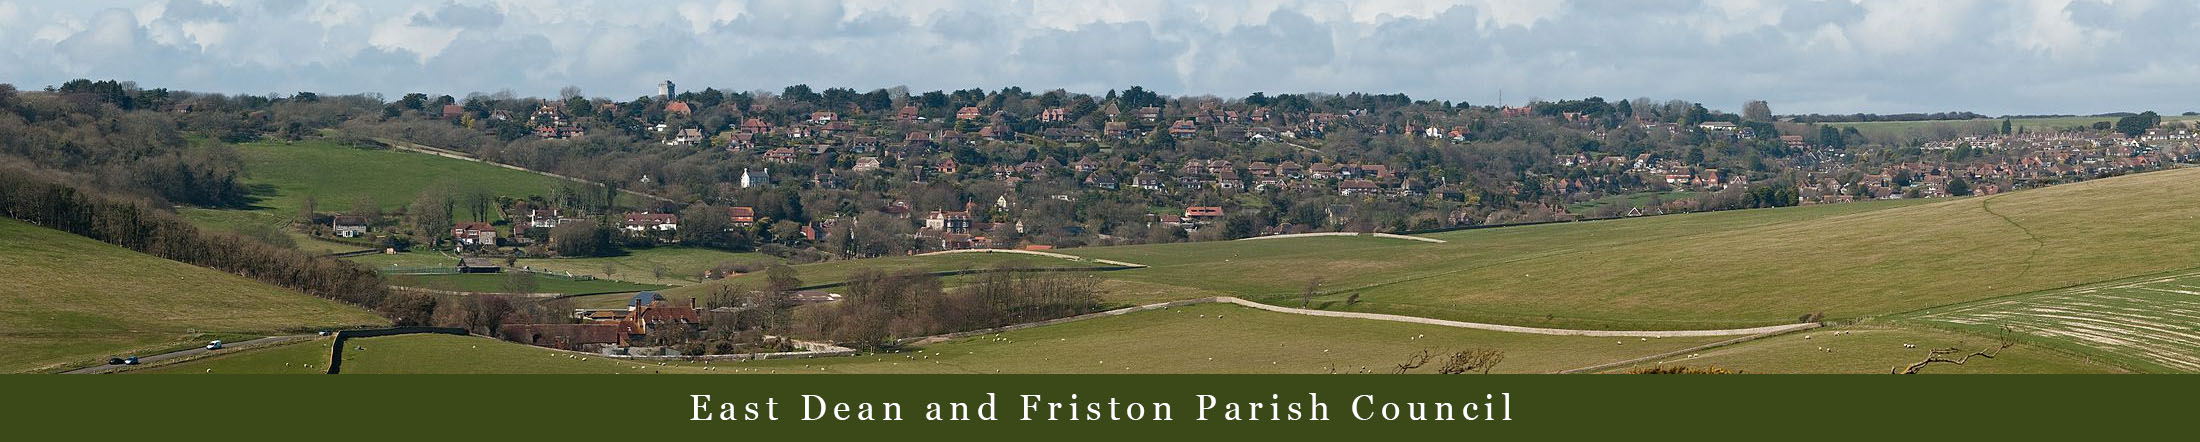 Header Image for East Dean and Friston Parish Council